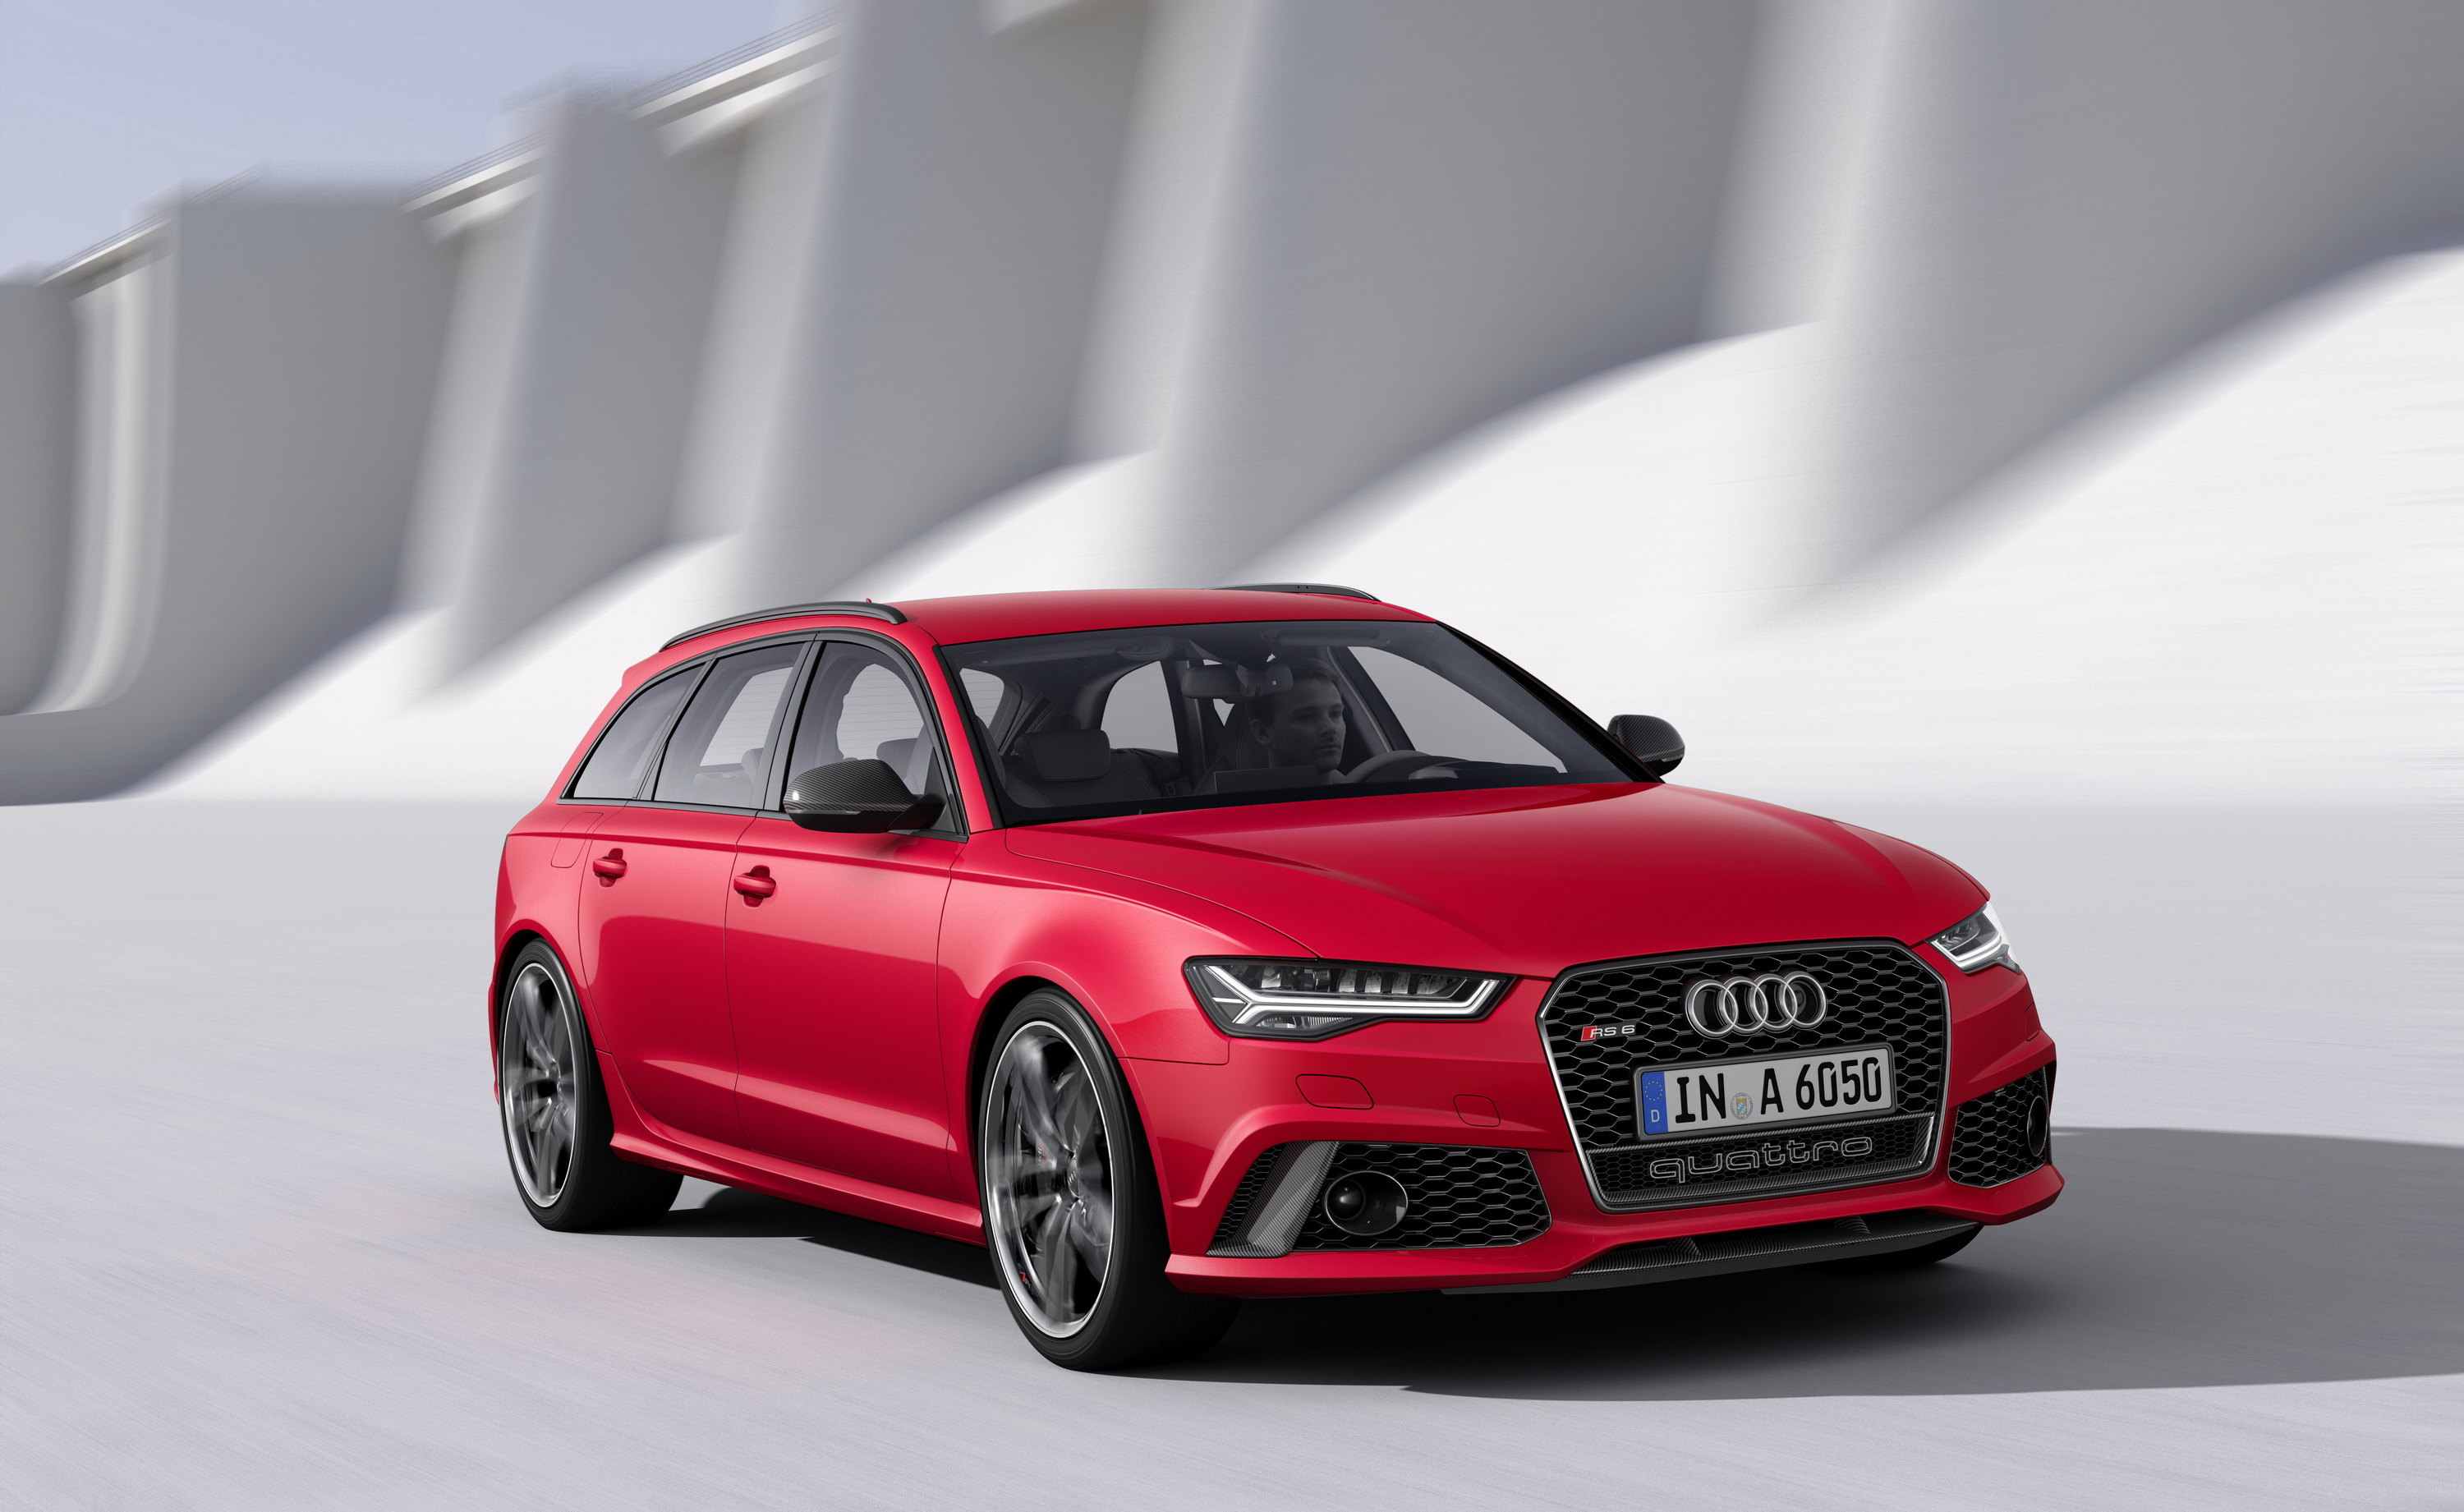 2015 audi rs6 avant gallery 567019 top speed. Black Bedroom Furniture Sets. Home Design Ideas